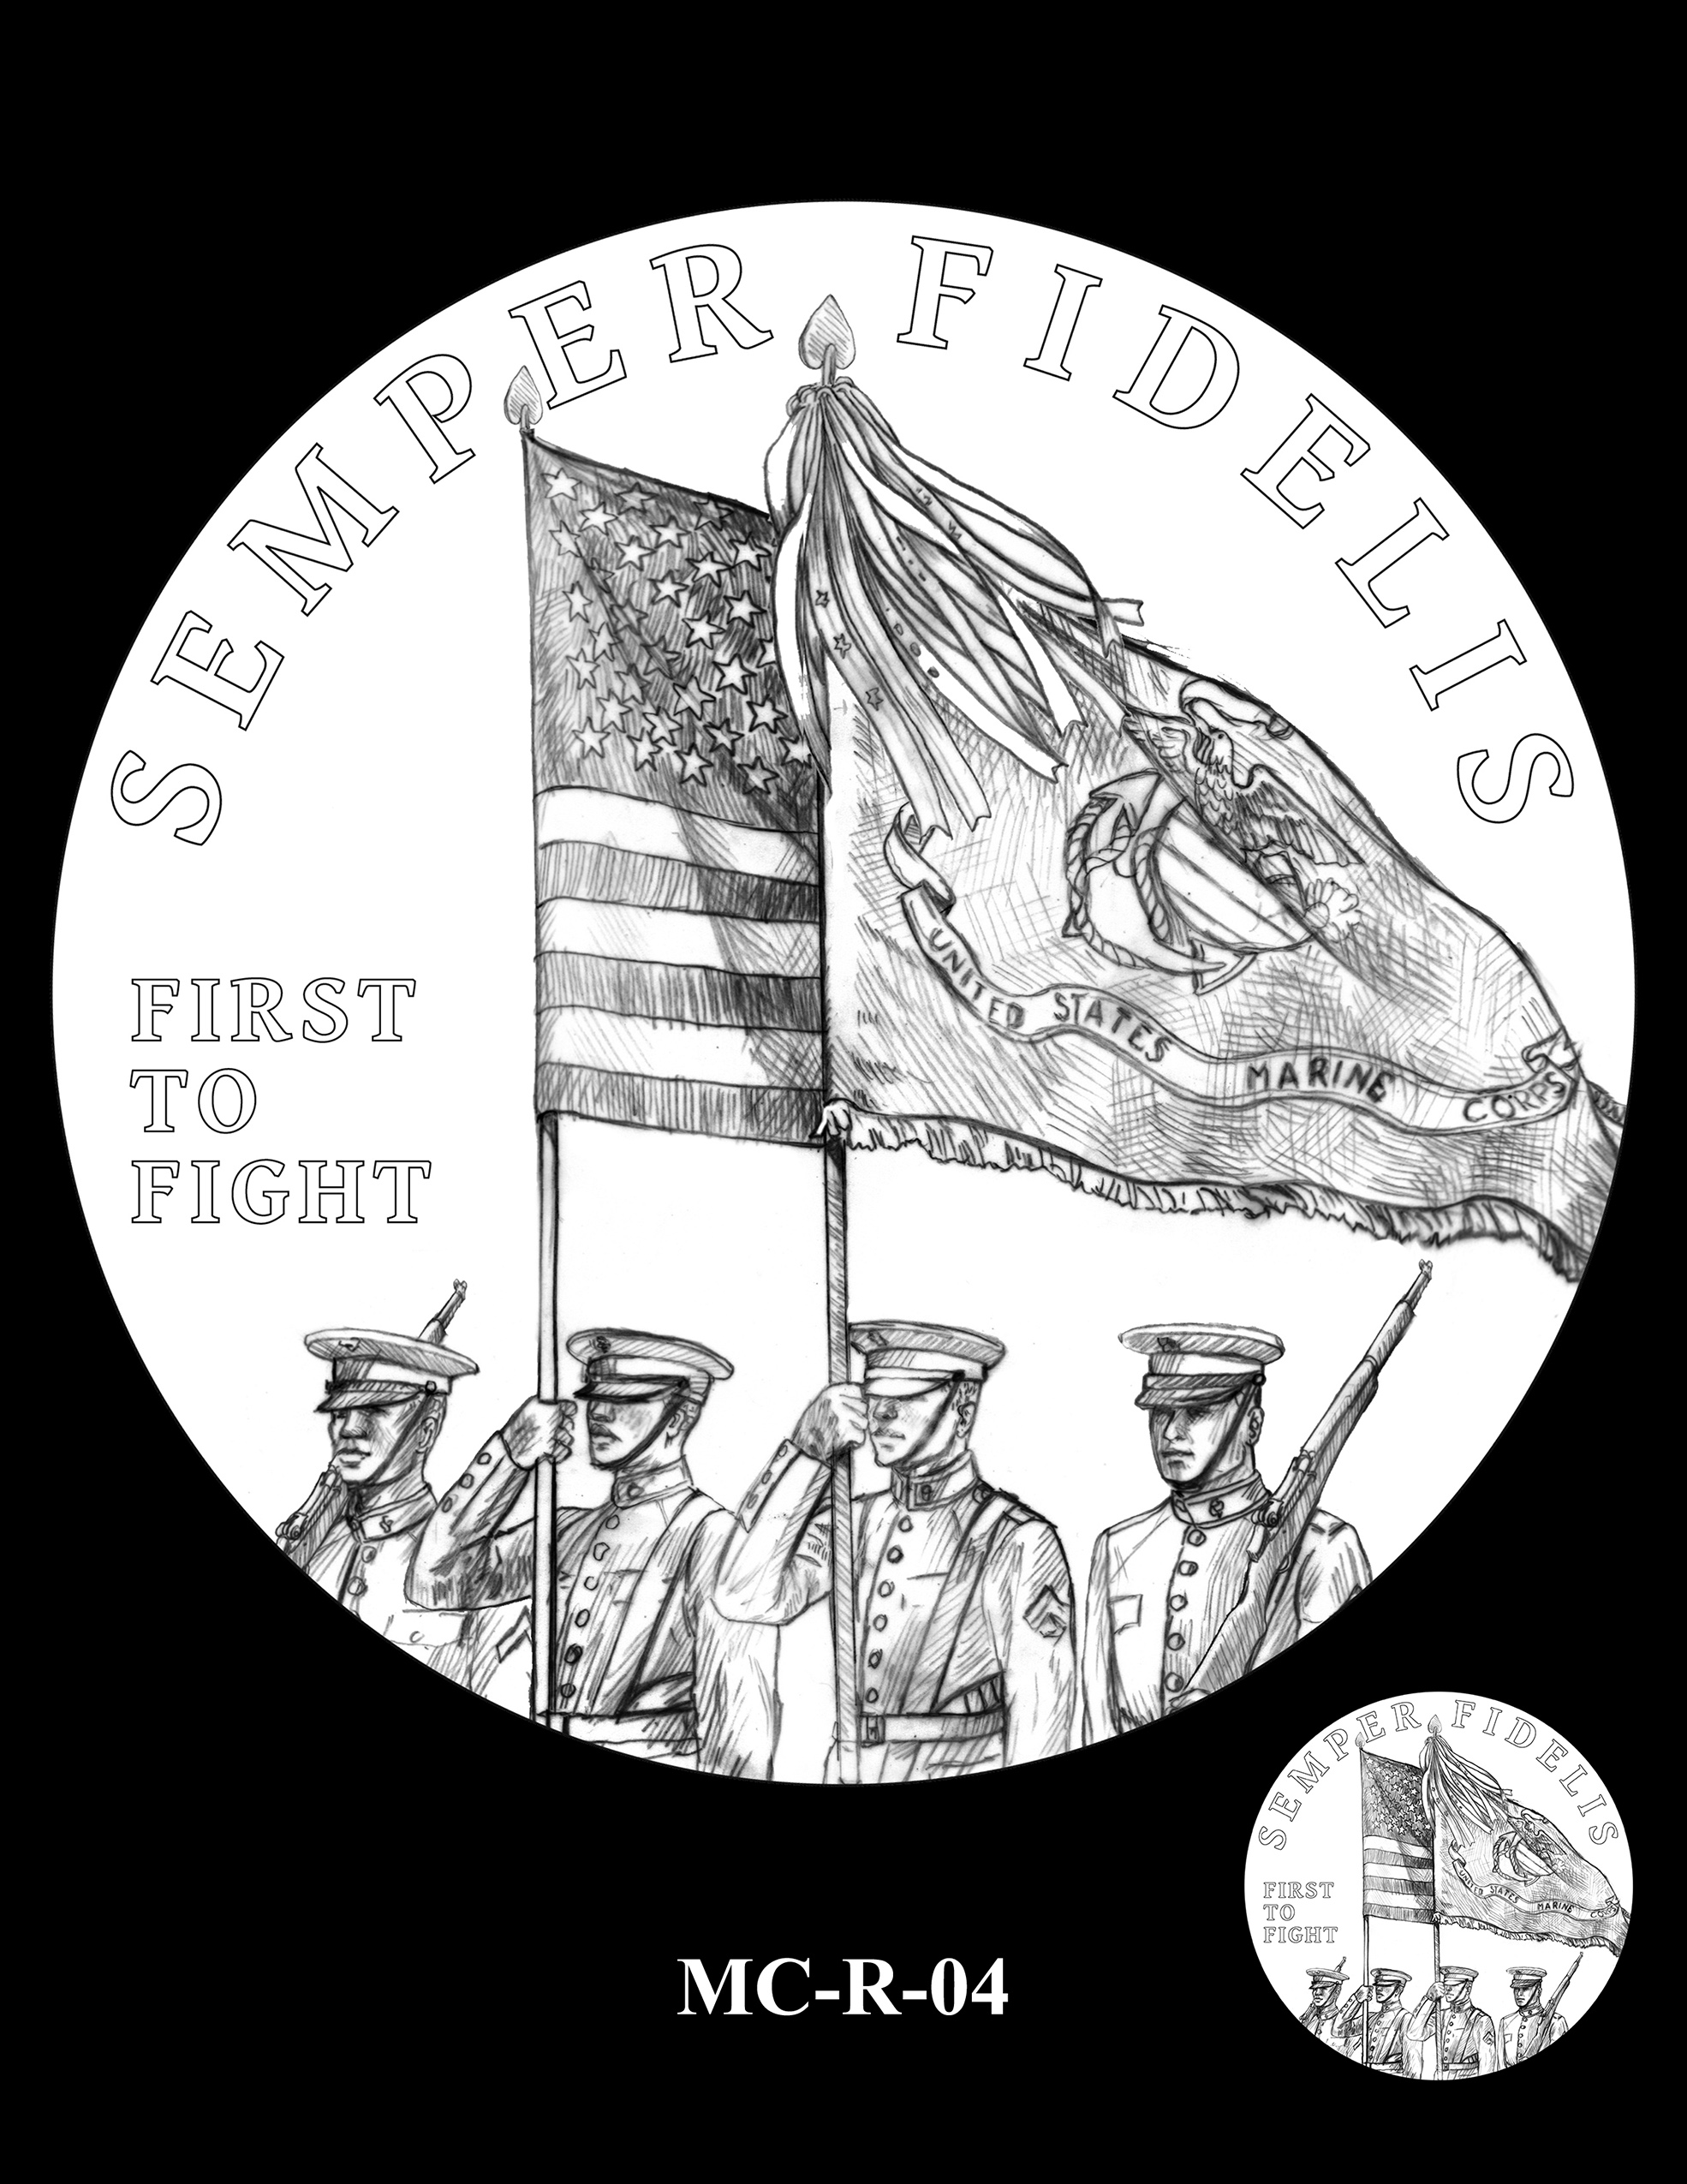 MC-R-04 -- United States Marine Corps Silver Medal